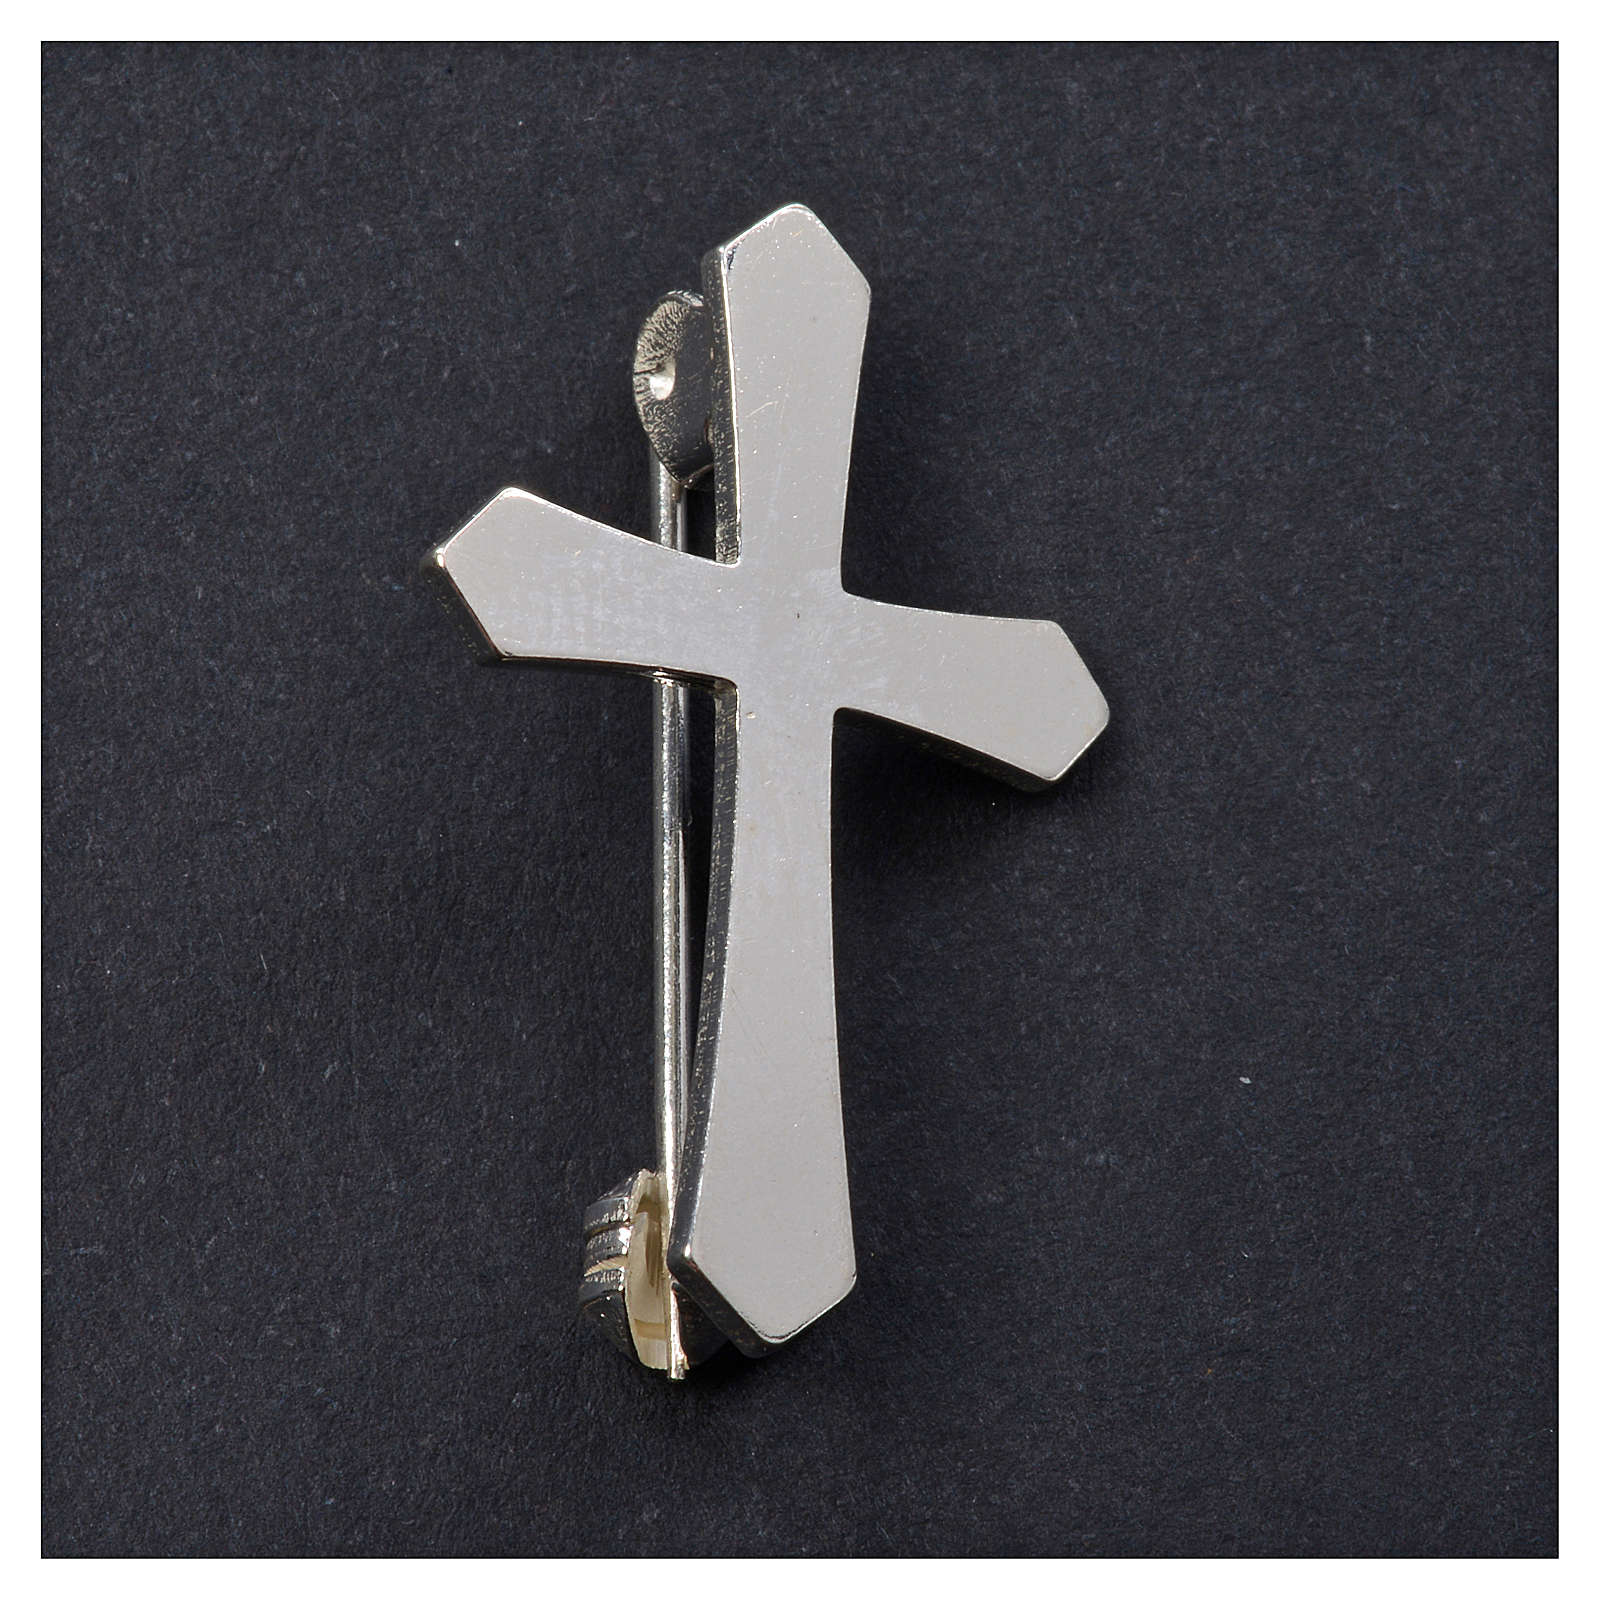 Clergyman pointed cross pin in 925 silver 4